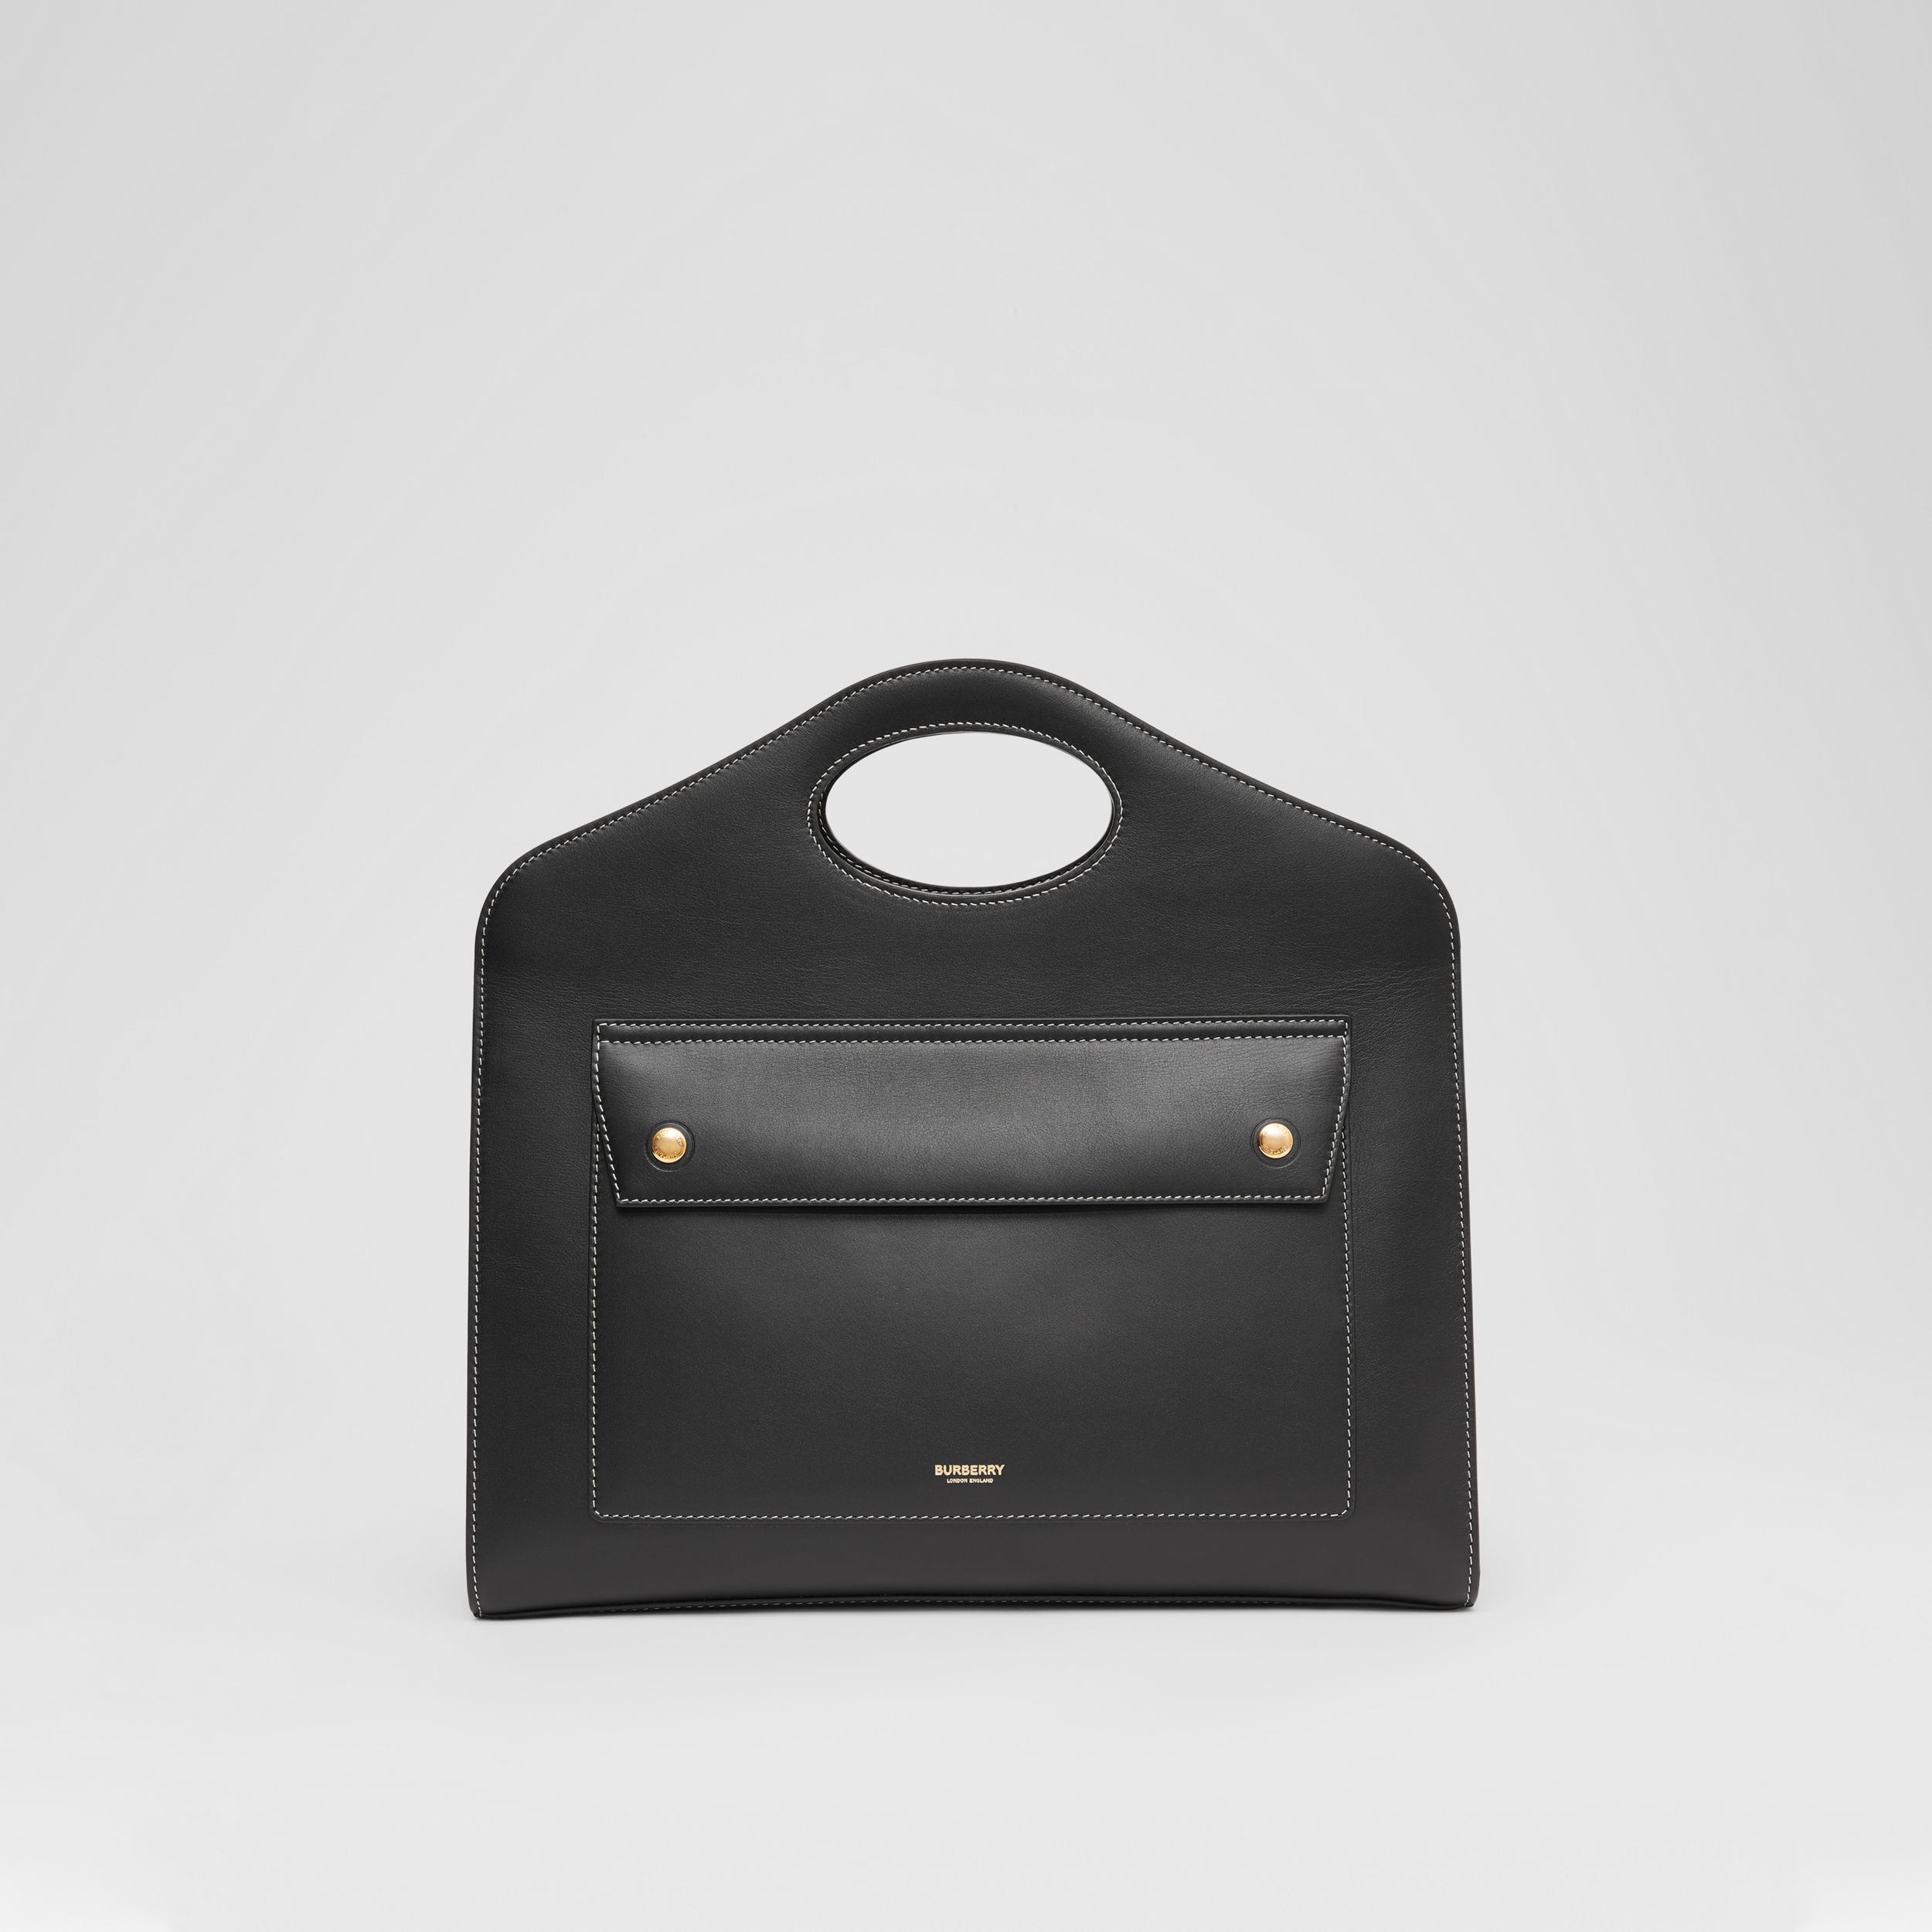 Medium Topstitched Leather Pocket Tote in Black - Women | Burberry Canada - 1